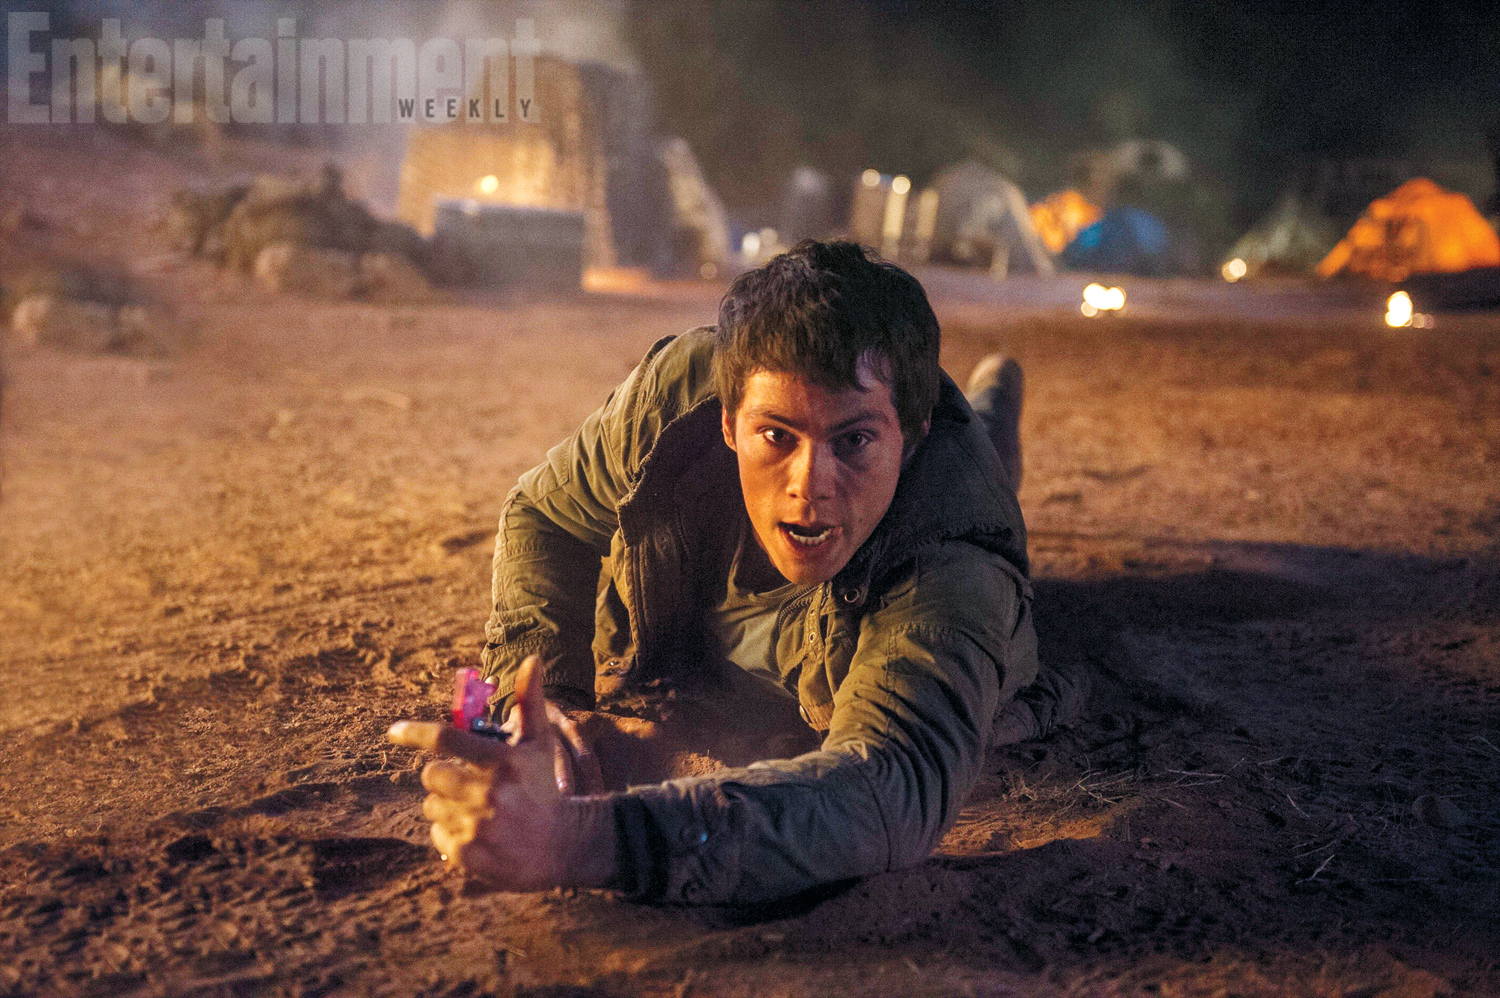 The Maze Runner 2 - La via di fuga: Dylan O'Brien interpreta Thomas nel sequel tratto dai romanzi di James Dashner